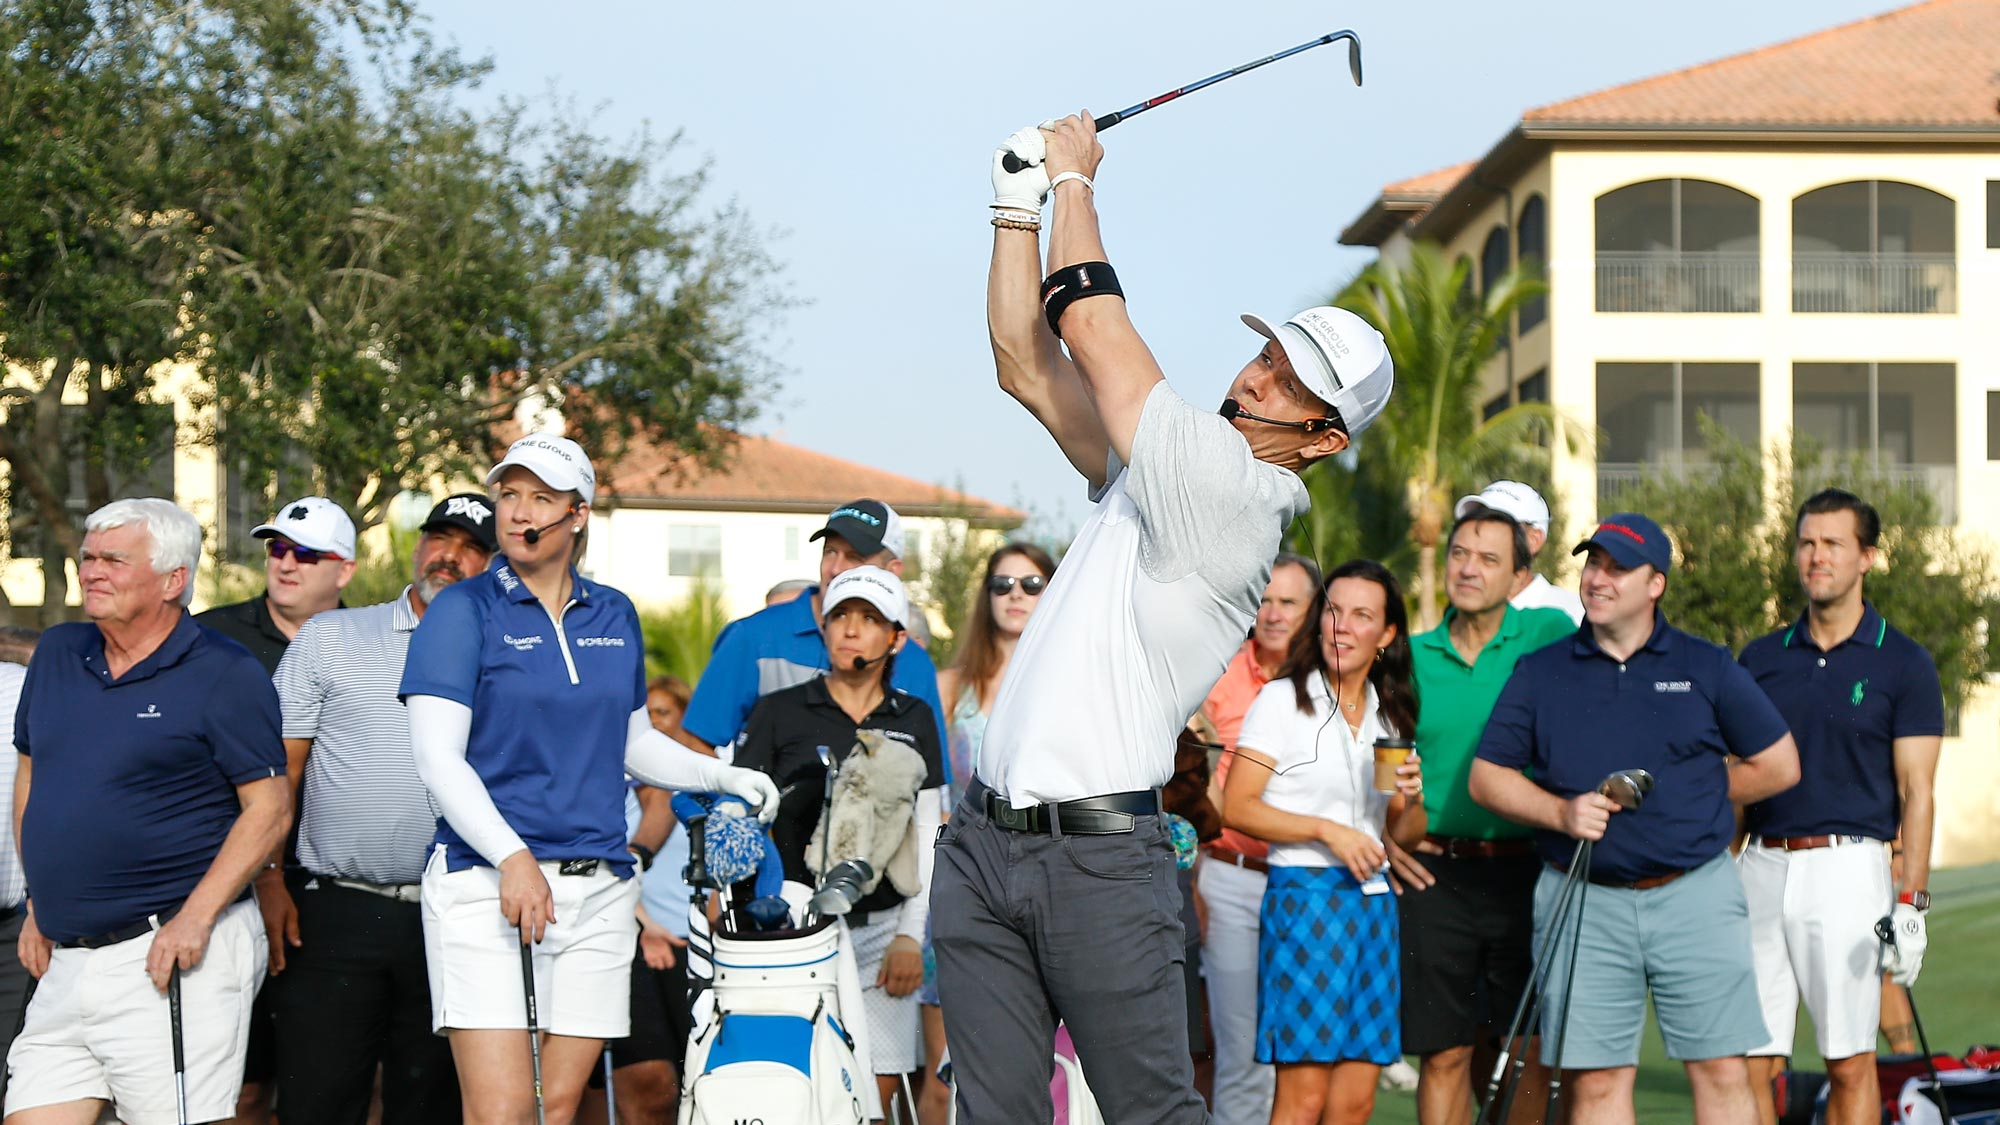 Actor Mark Wahlberg plays a shot during the CME Group charity event to benefit St. Jude Children's Research Hospital prior to the LPGA CME Group Tour Championship